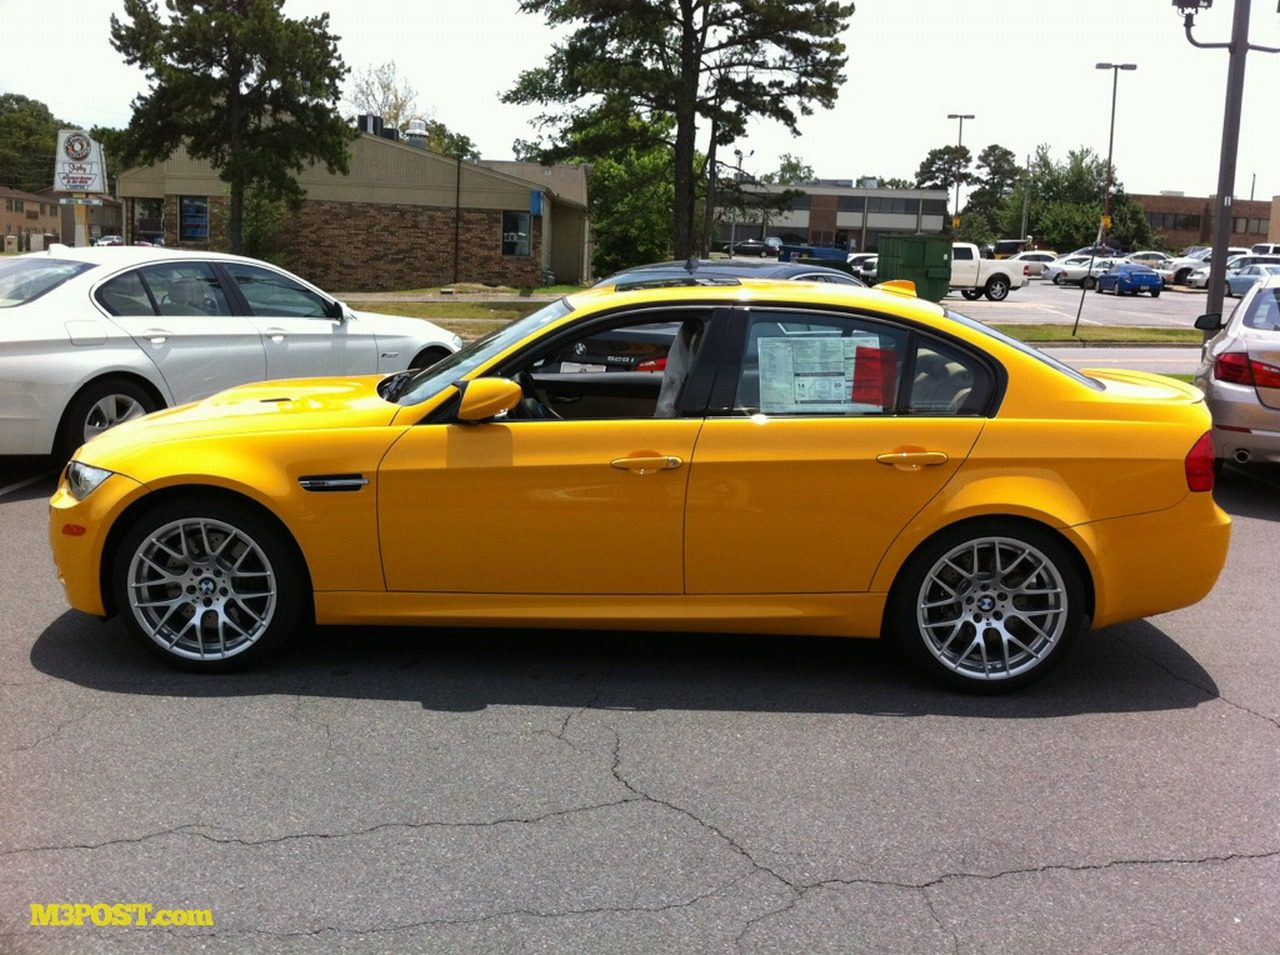 BMW_M3_Atacama_Yellow_01.jpg